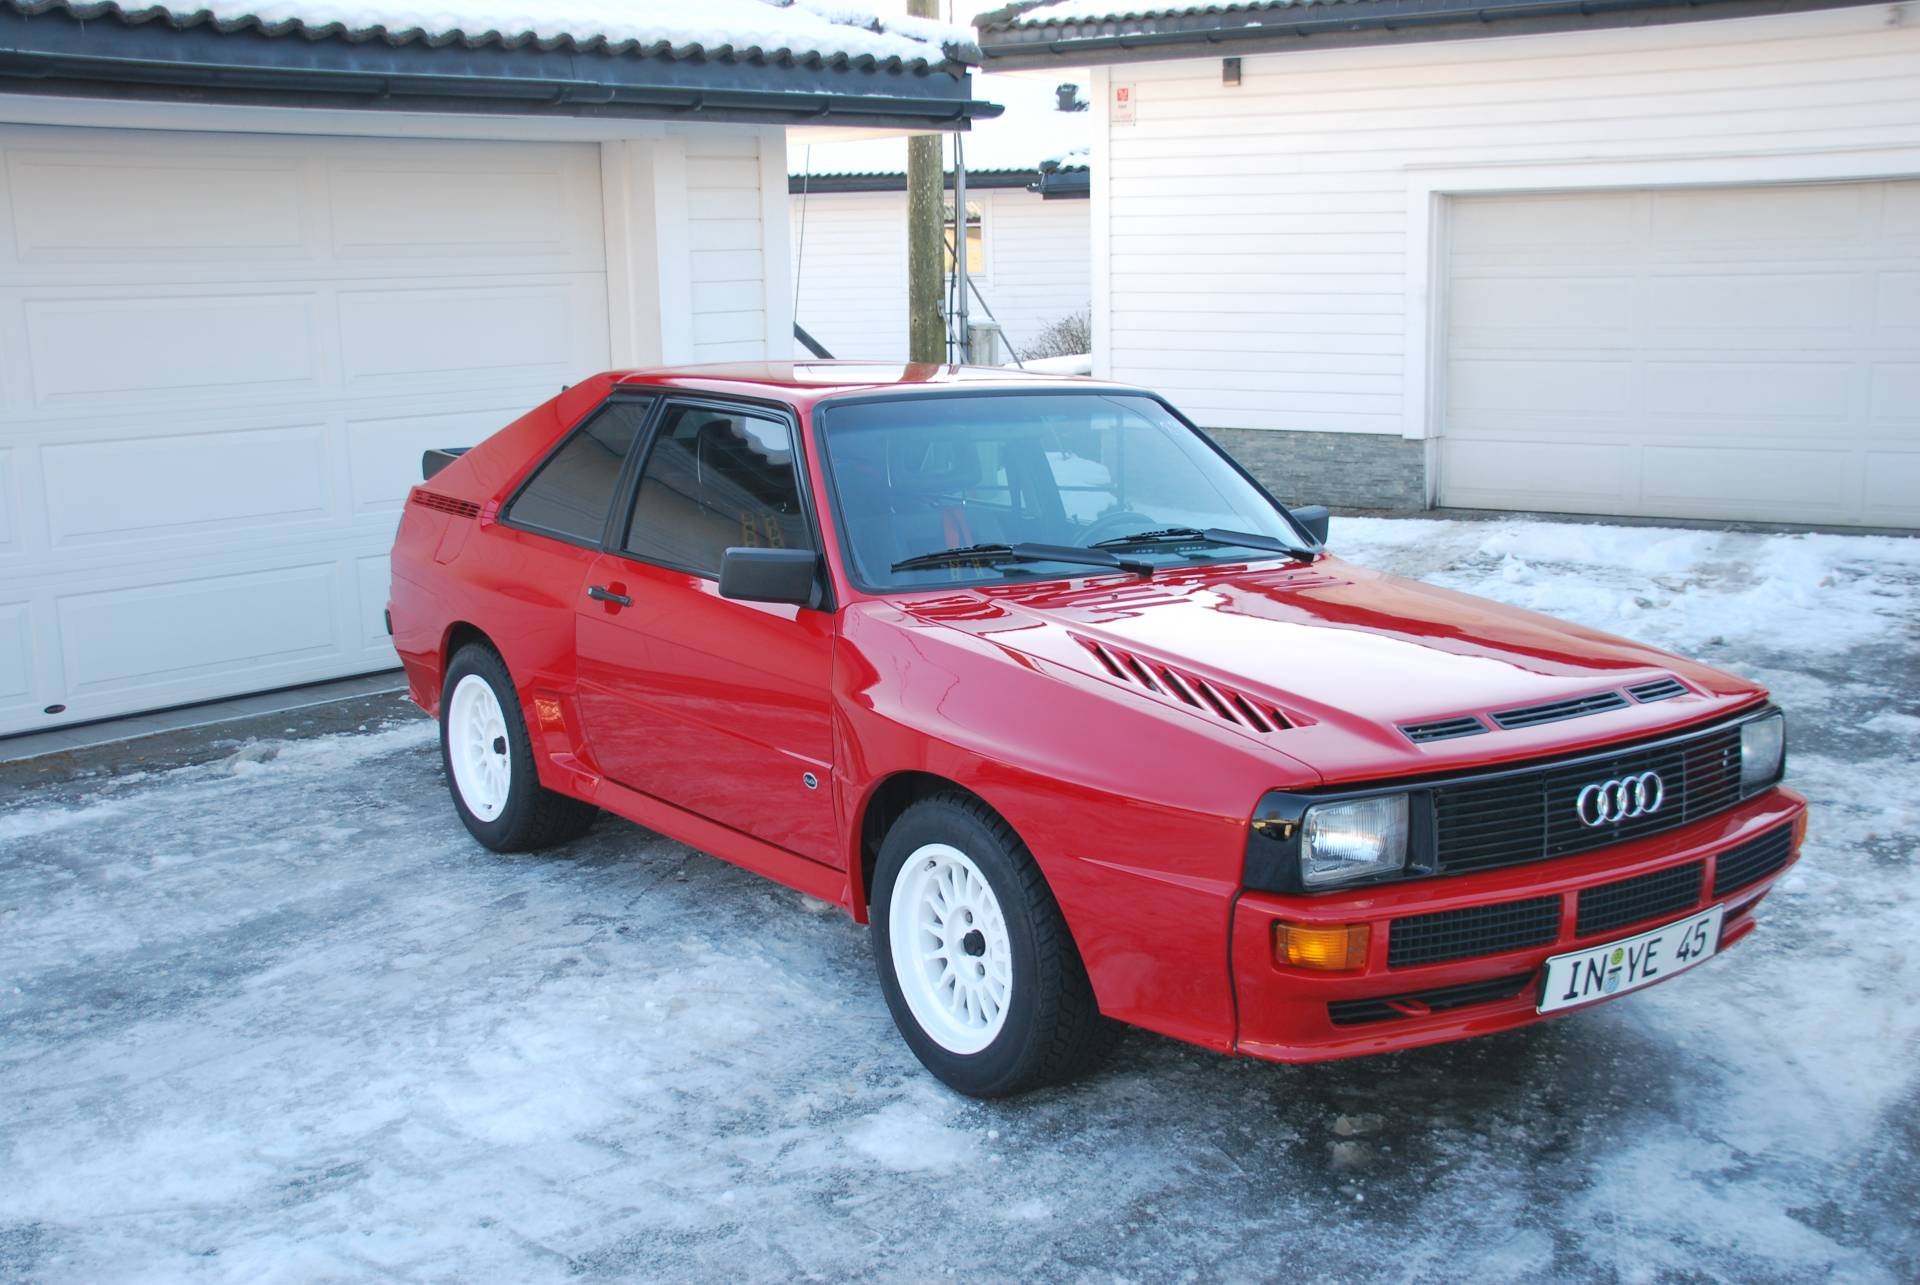 audi sport quattro 1985 for sale classic trader. Black Bedroom Furniture Sets. Home Design Ideas